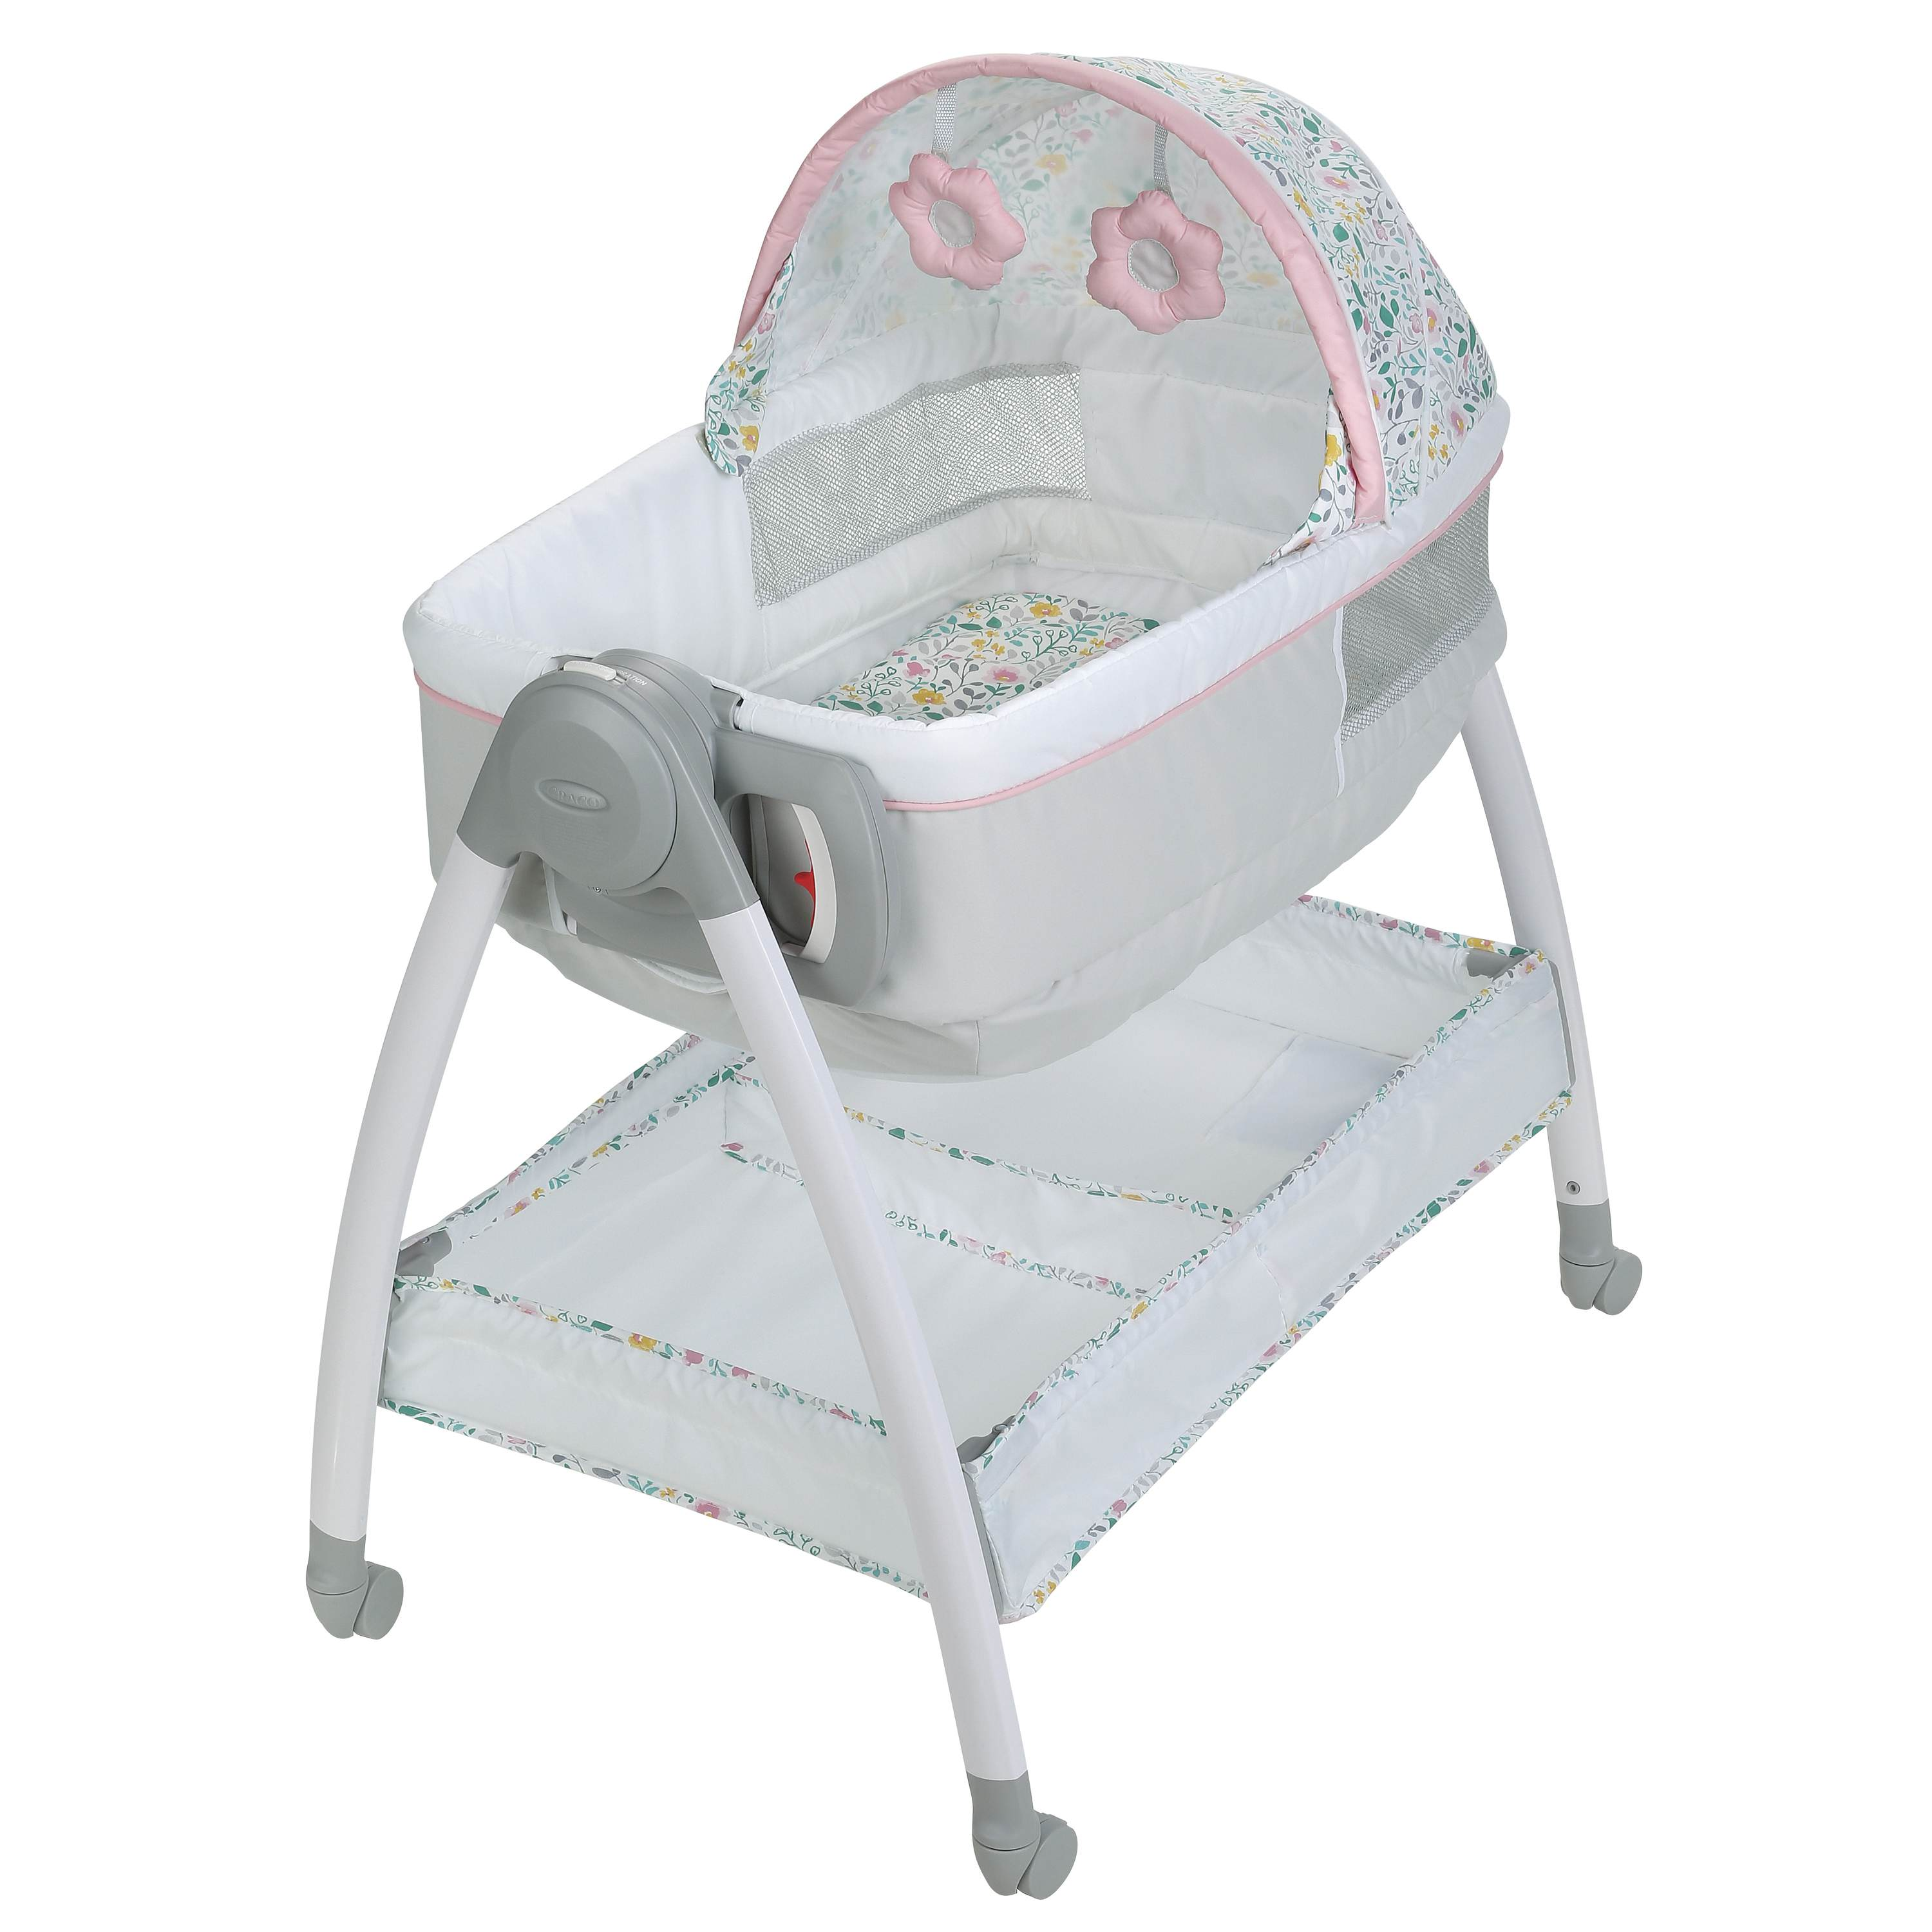 Graco Dream Suite Bassinet and Changer, Tasha